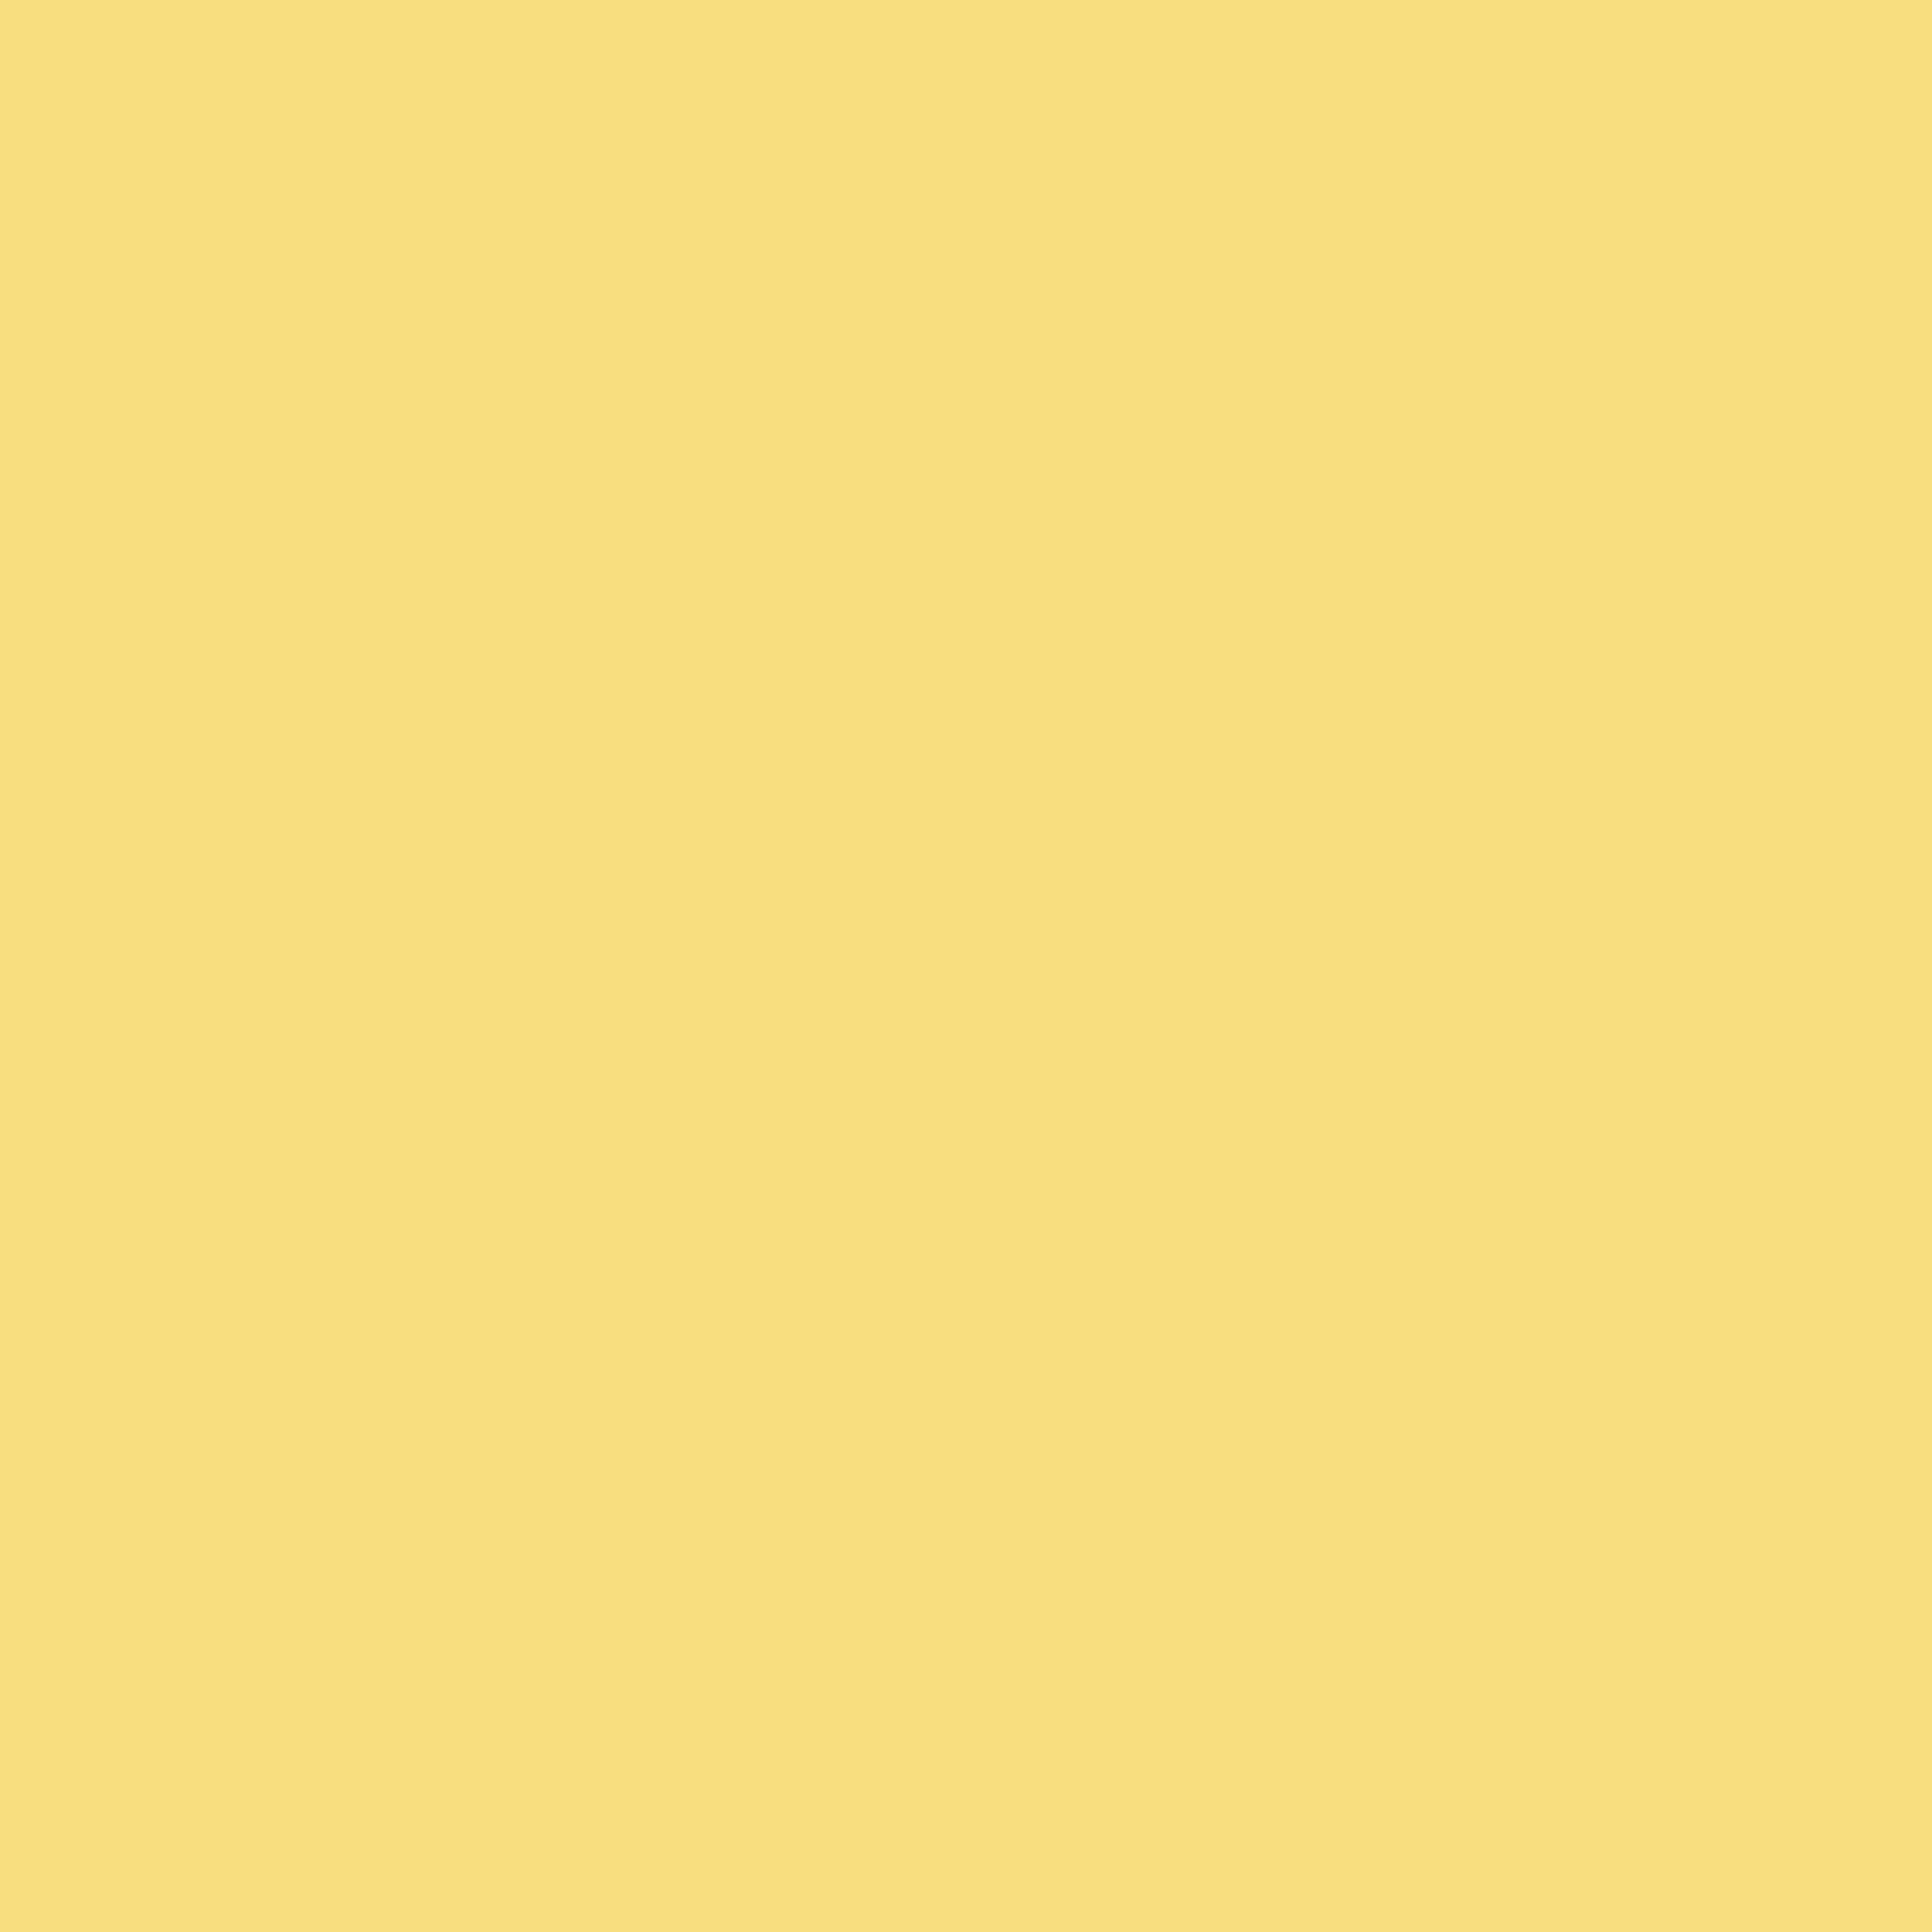 2048x2048 Mellow Yellow Solid Color Background